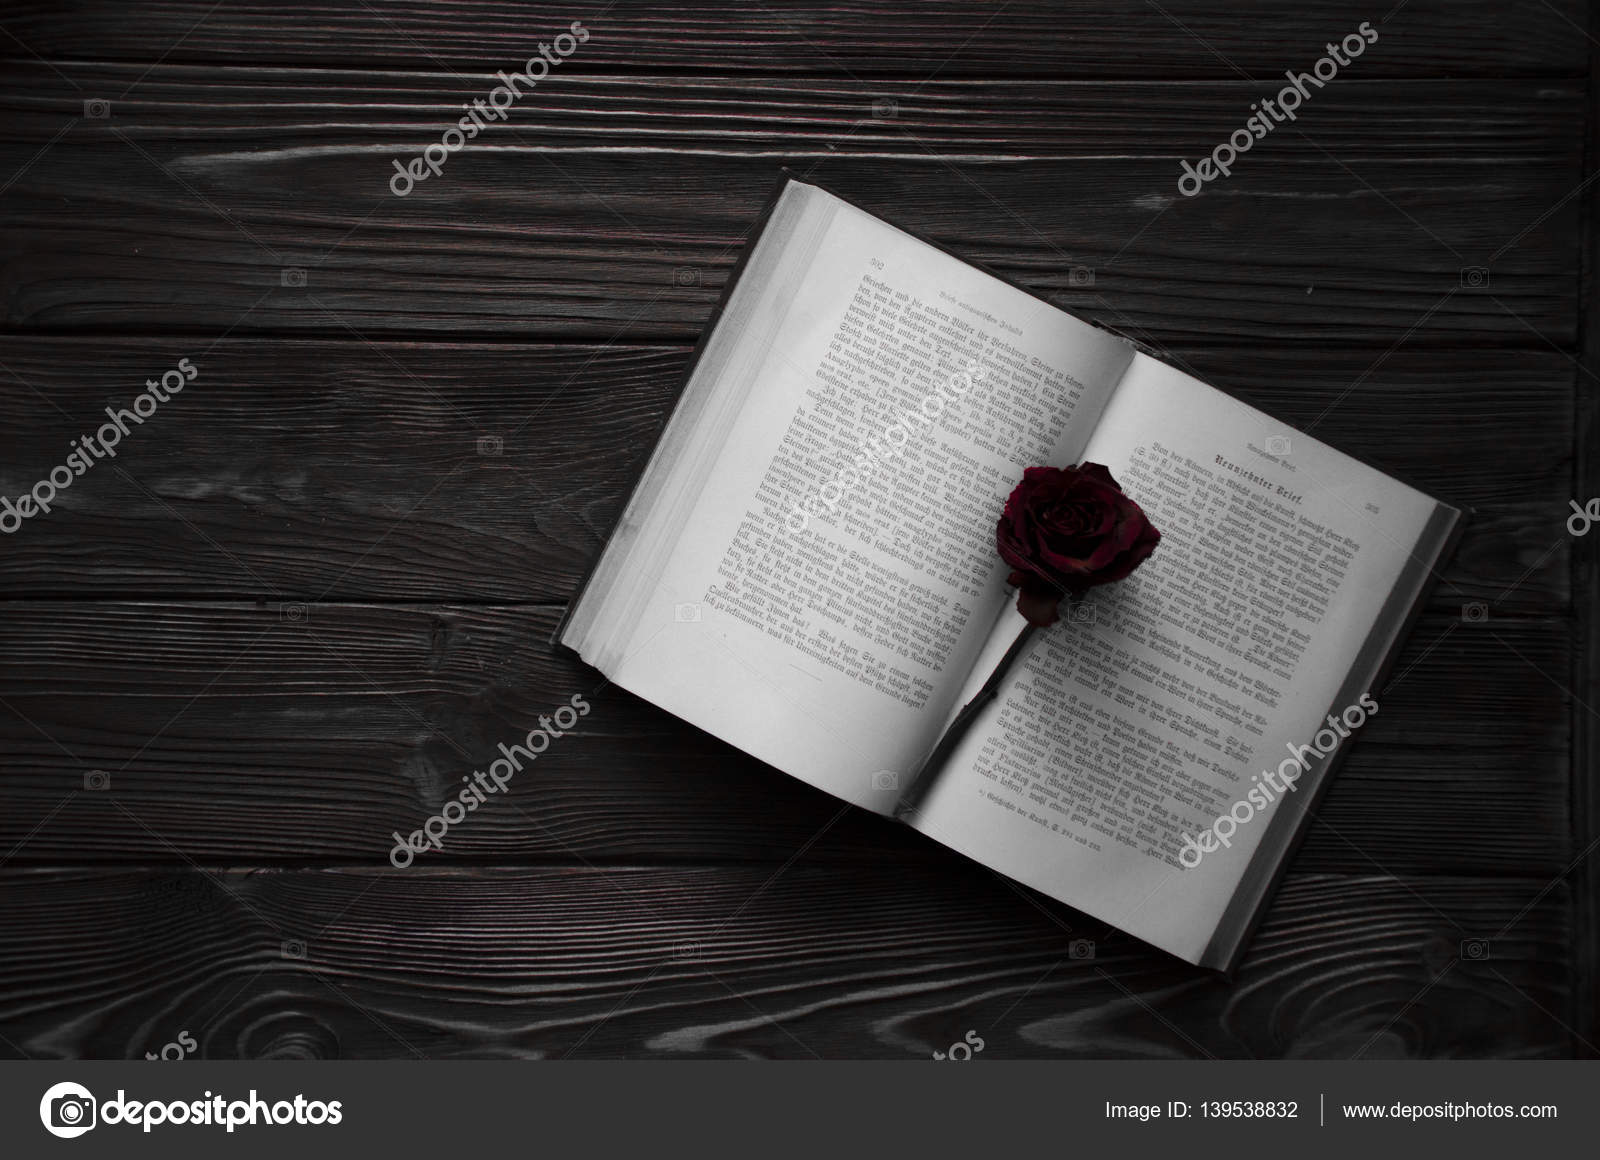 An open book with a red rose flower on it  Wooden background